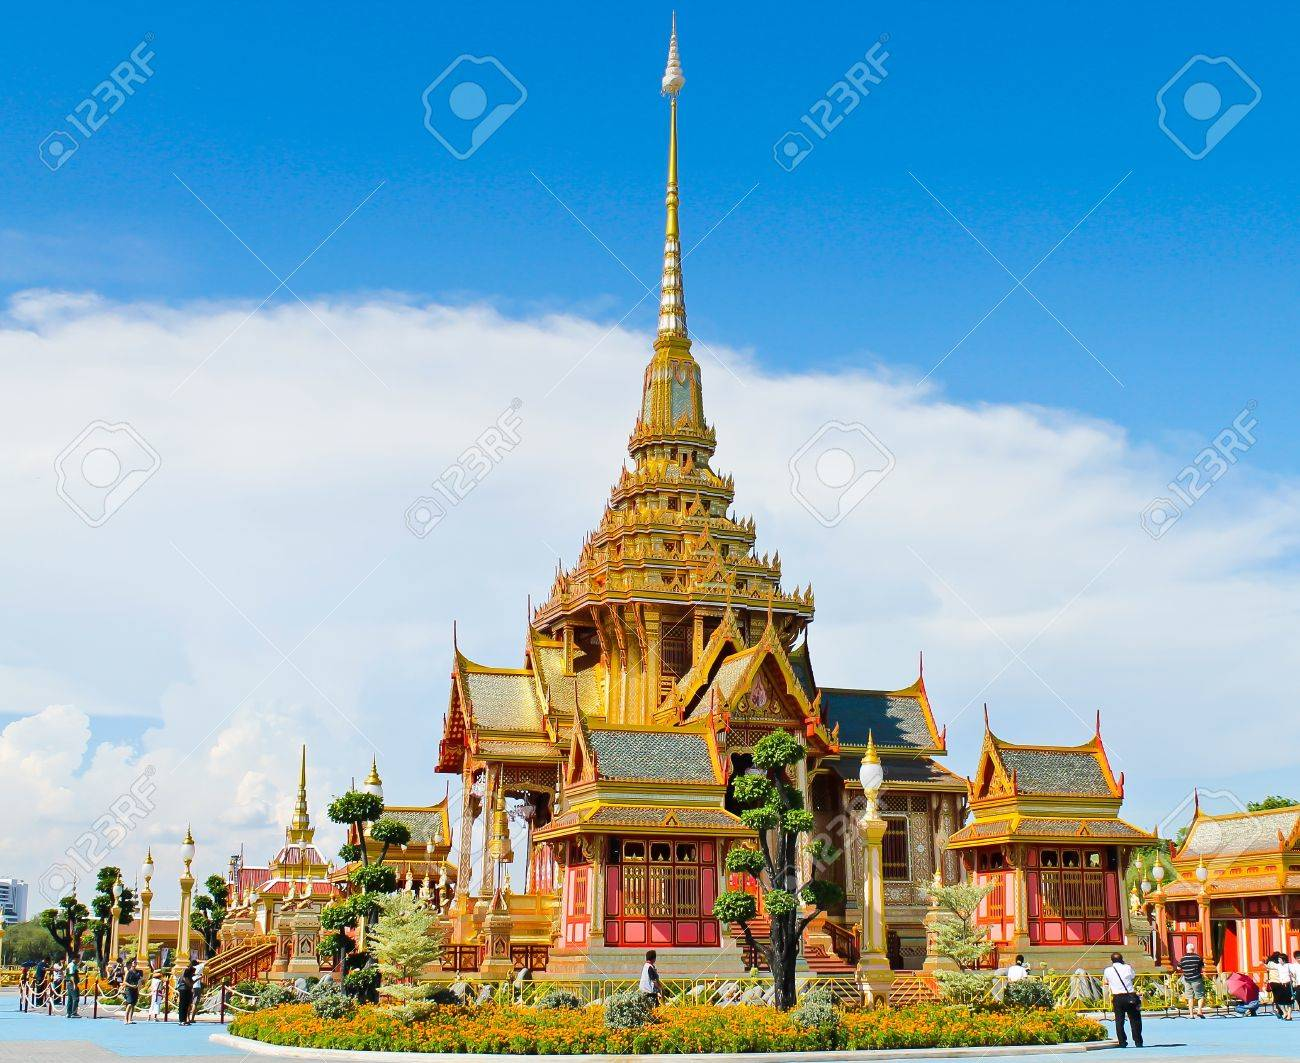 The royal crematorium in the royal cremation ceremony, Thailand Stock Photo - 13293850